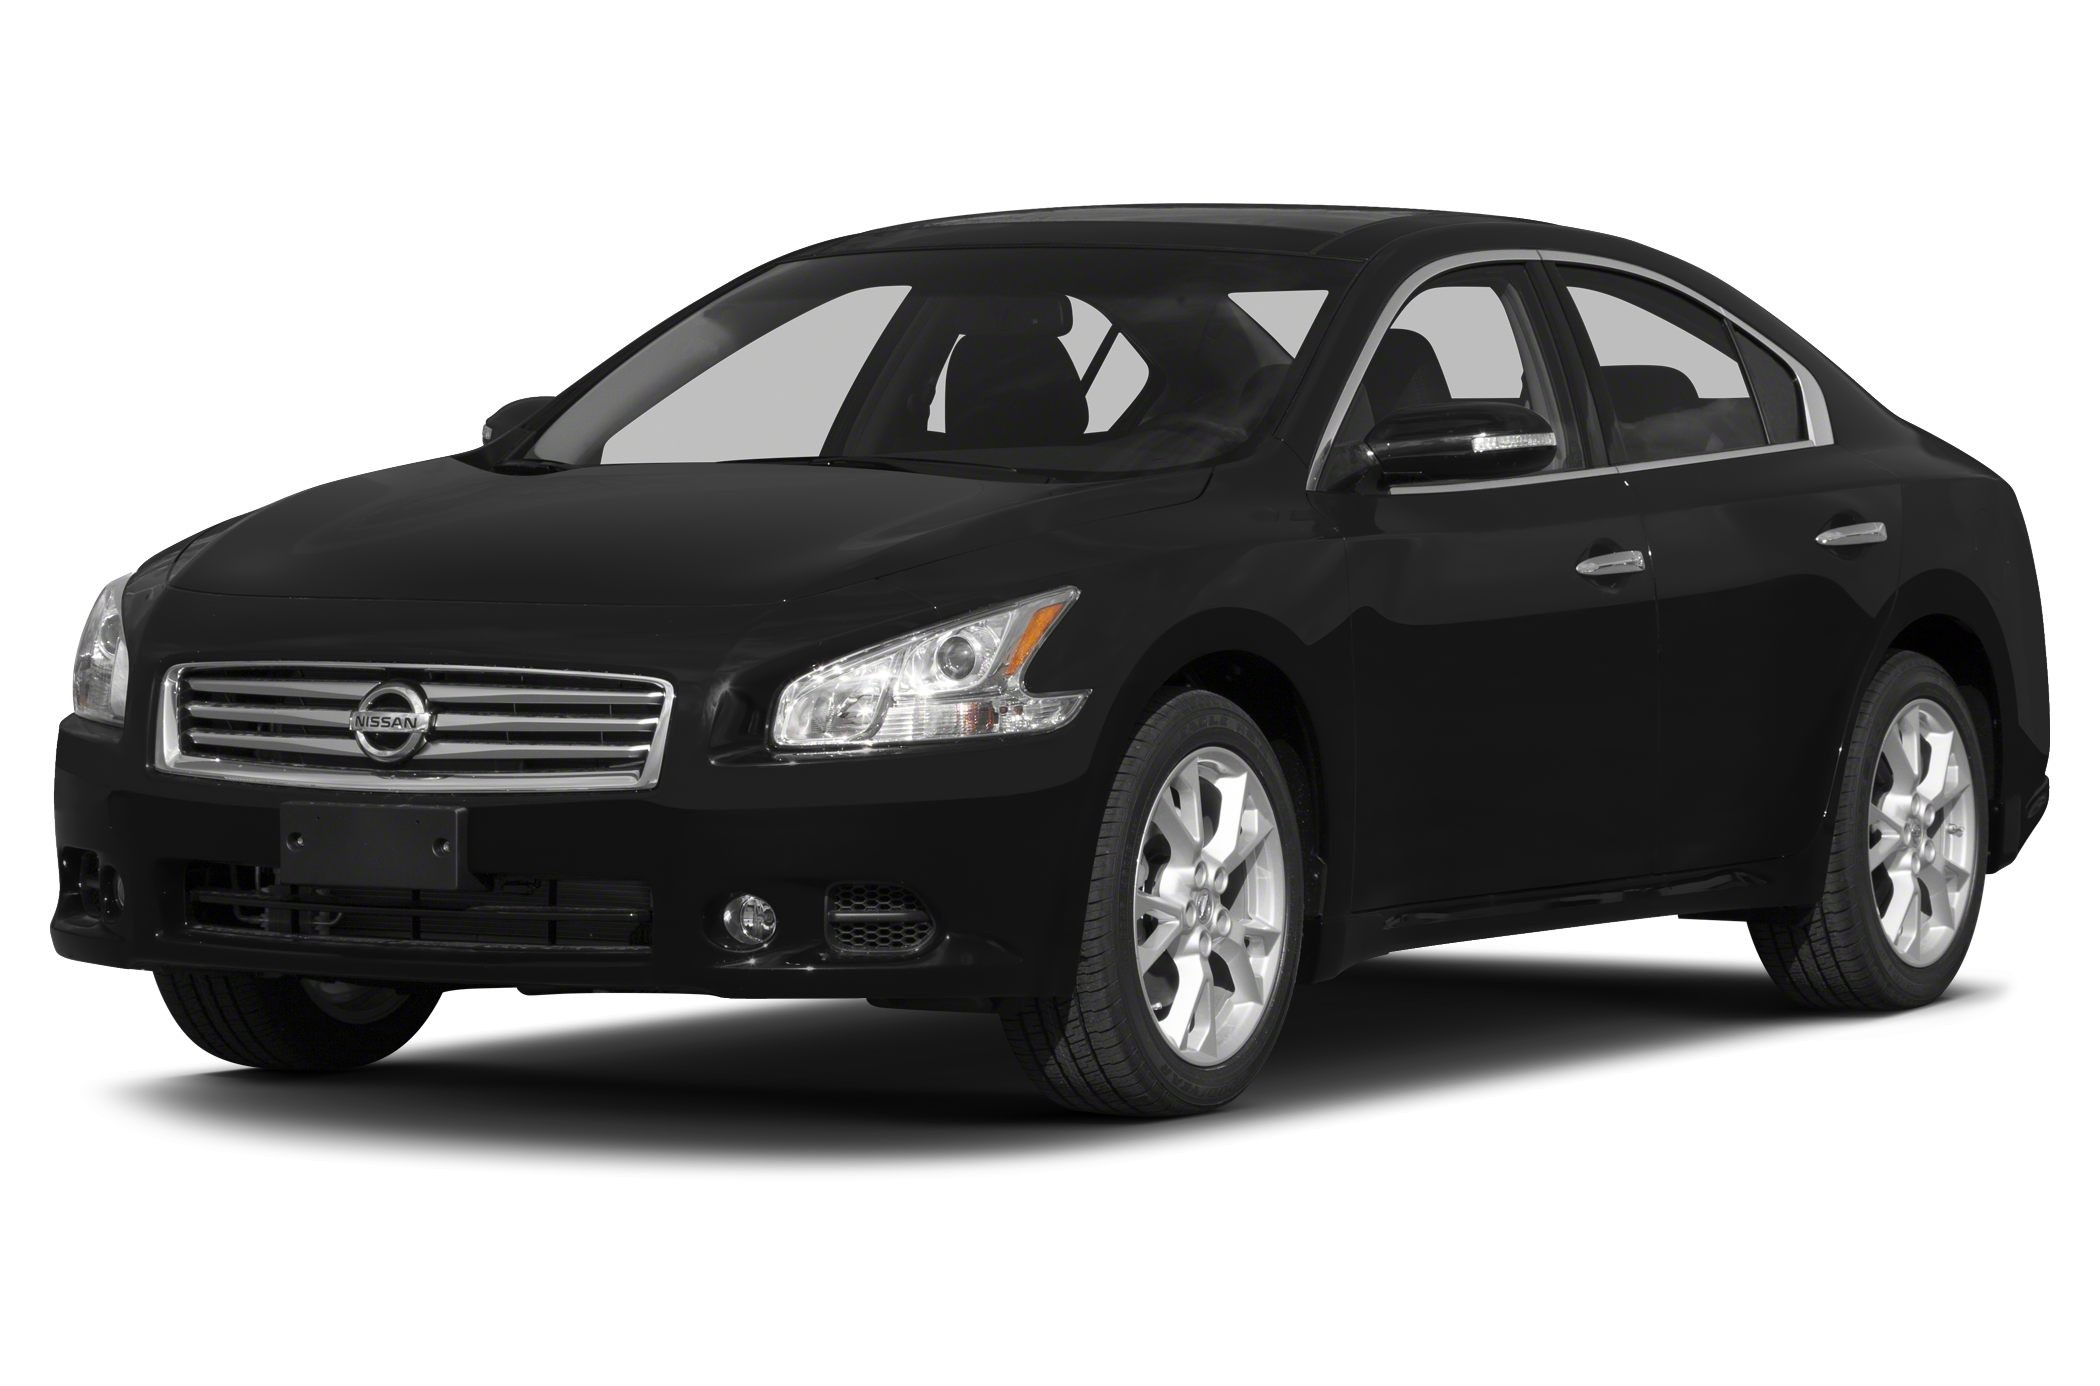 2003 Chevy Impala Engine Diagram 2013 Nissan Maxima Specs and Prices Of 2003 Chevy Impala Engine Diagram